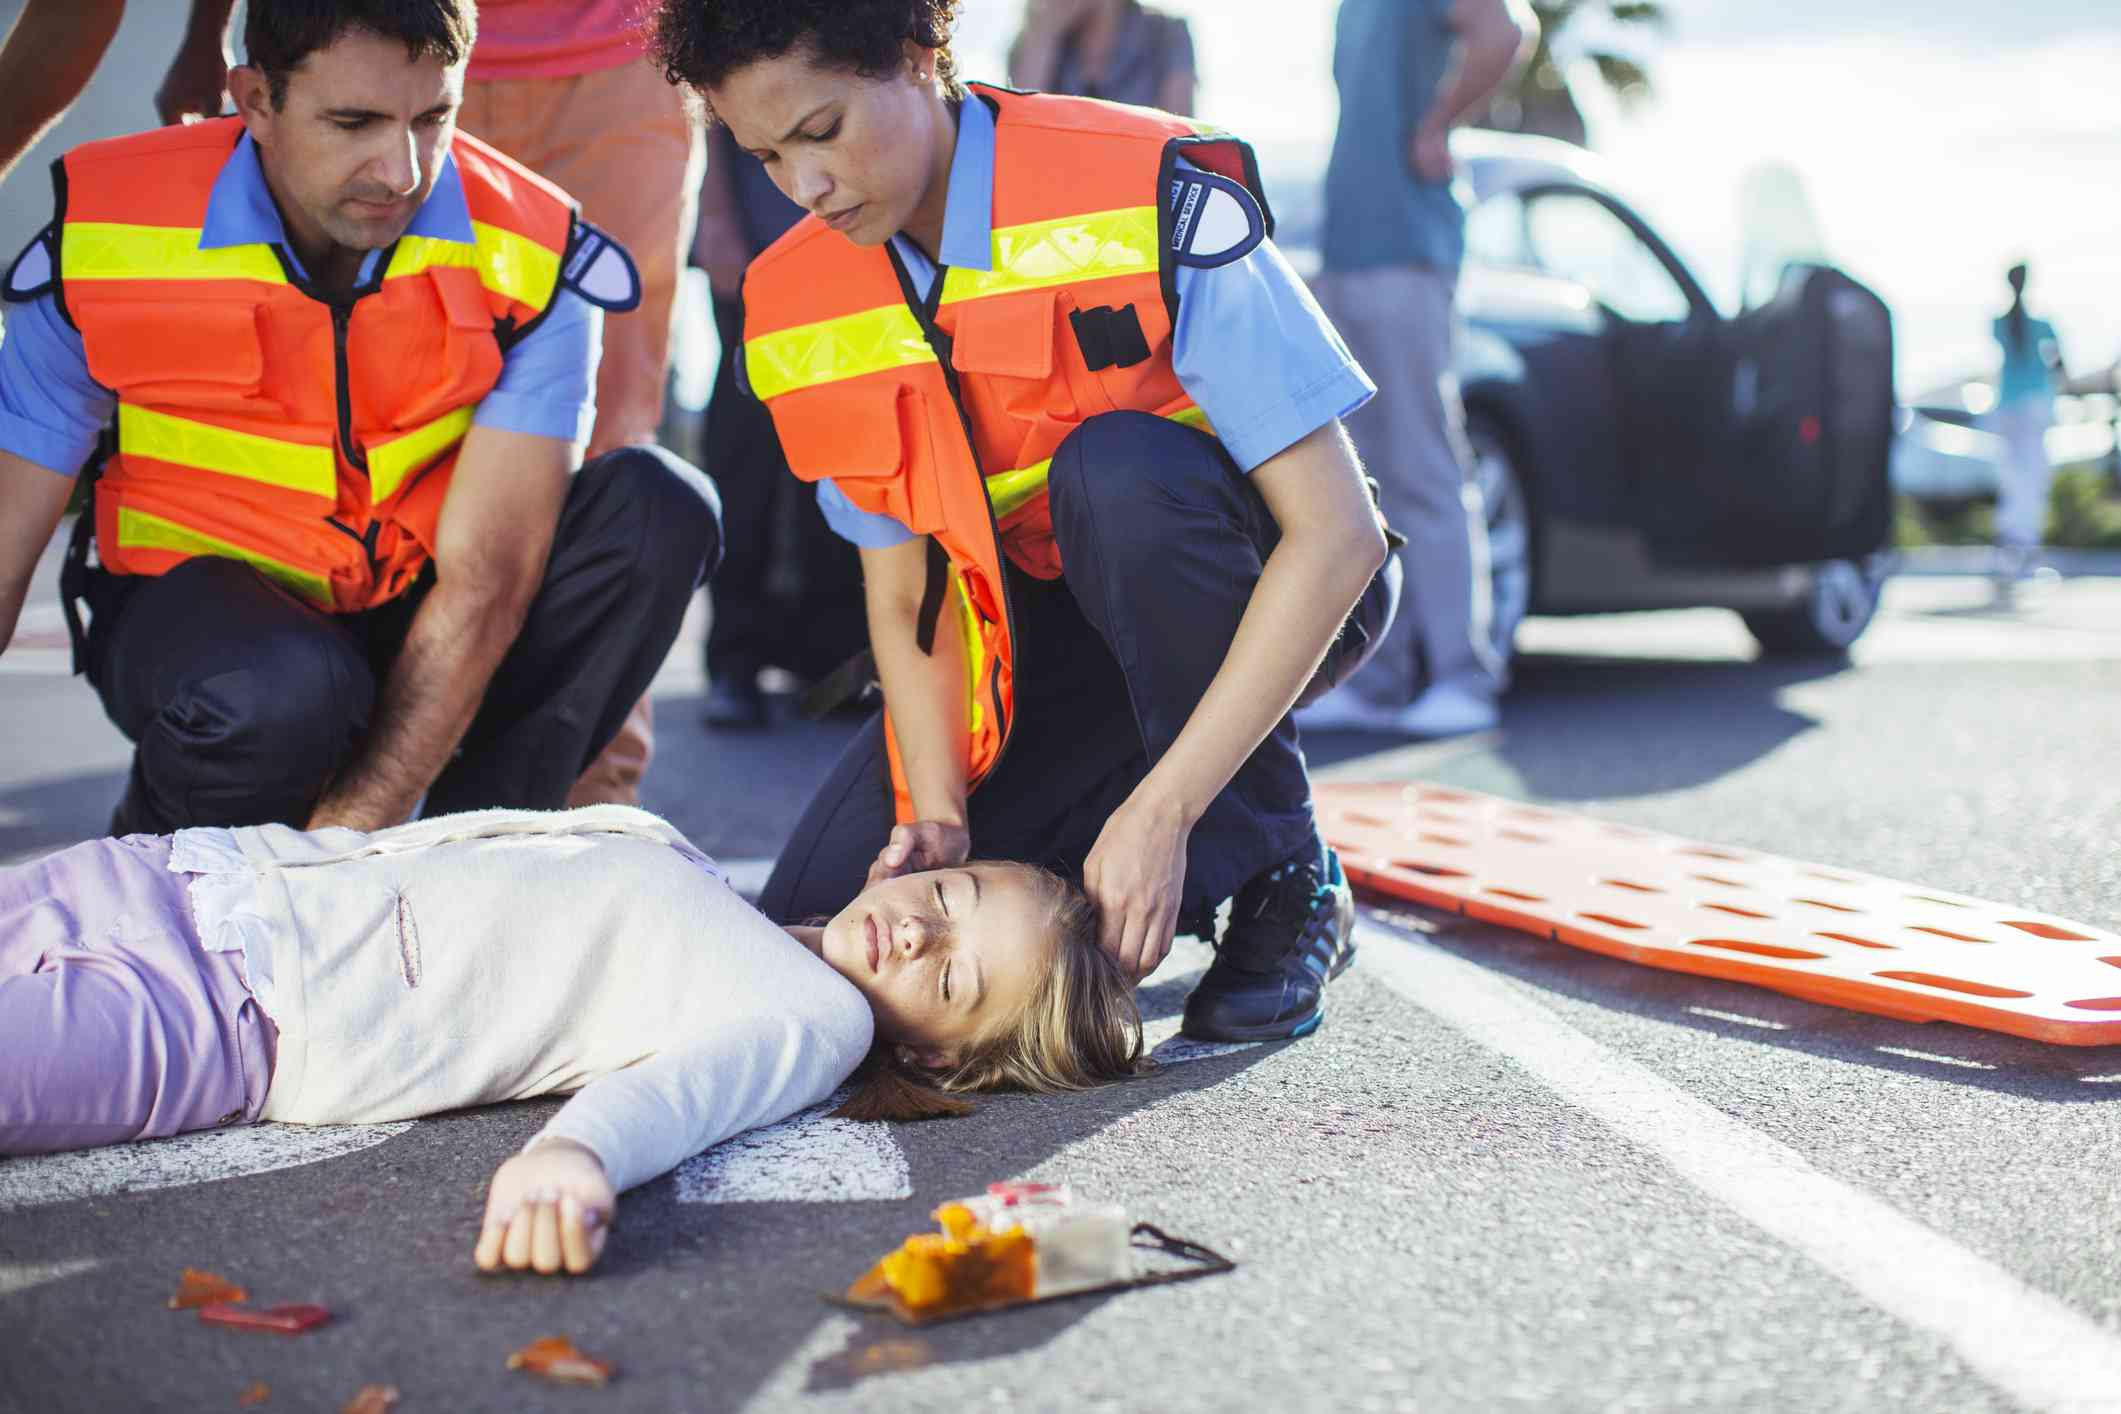 First responders checking an unconscious girl